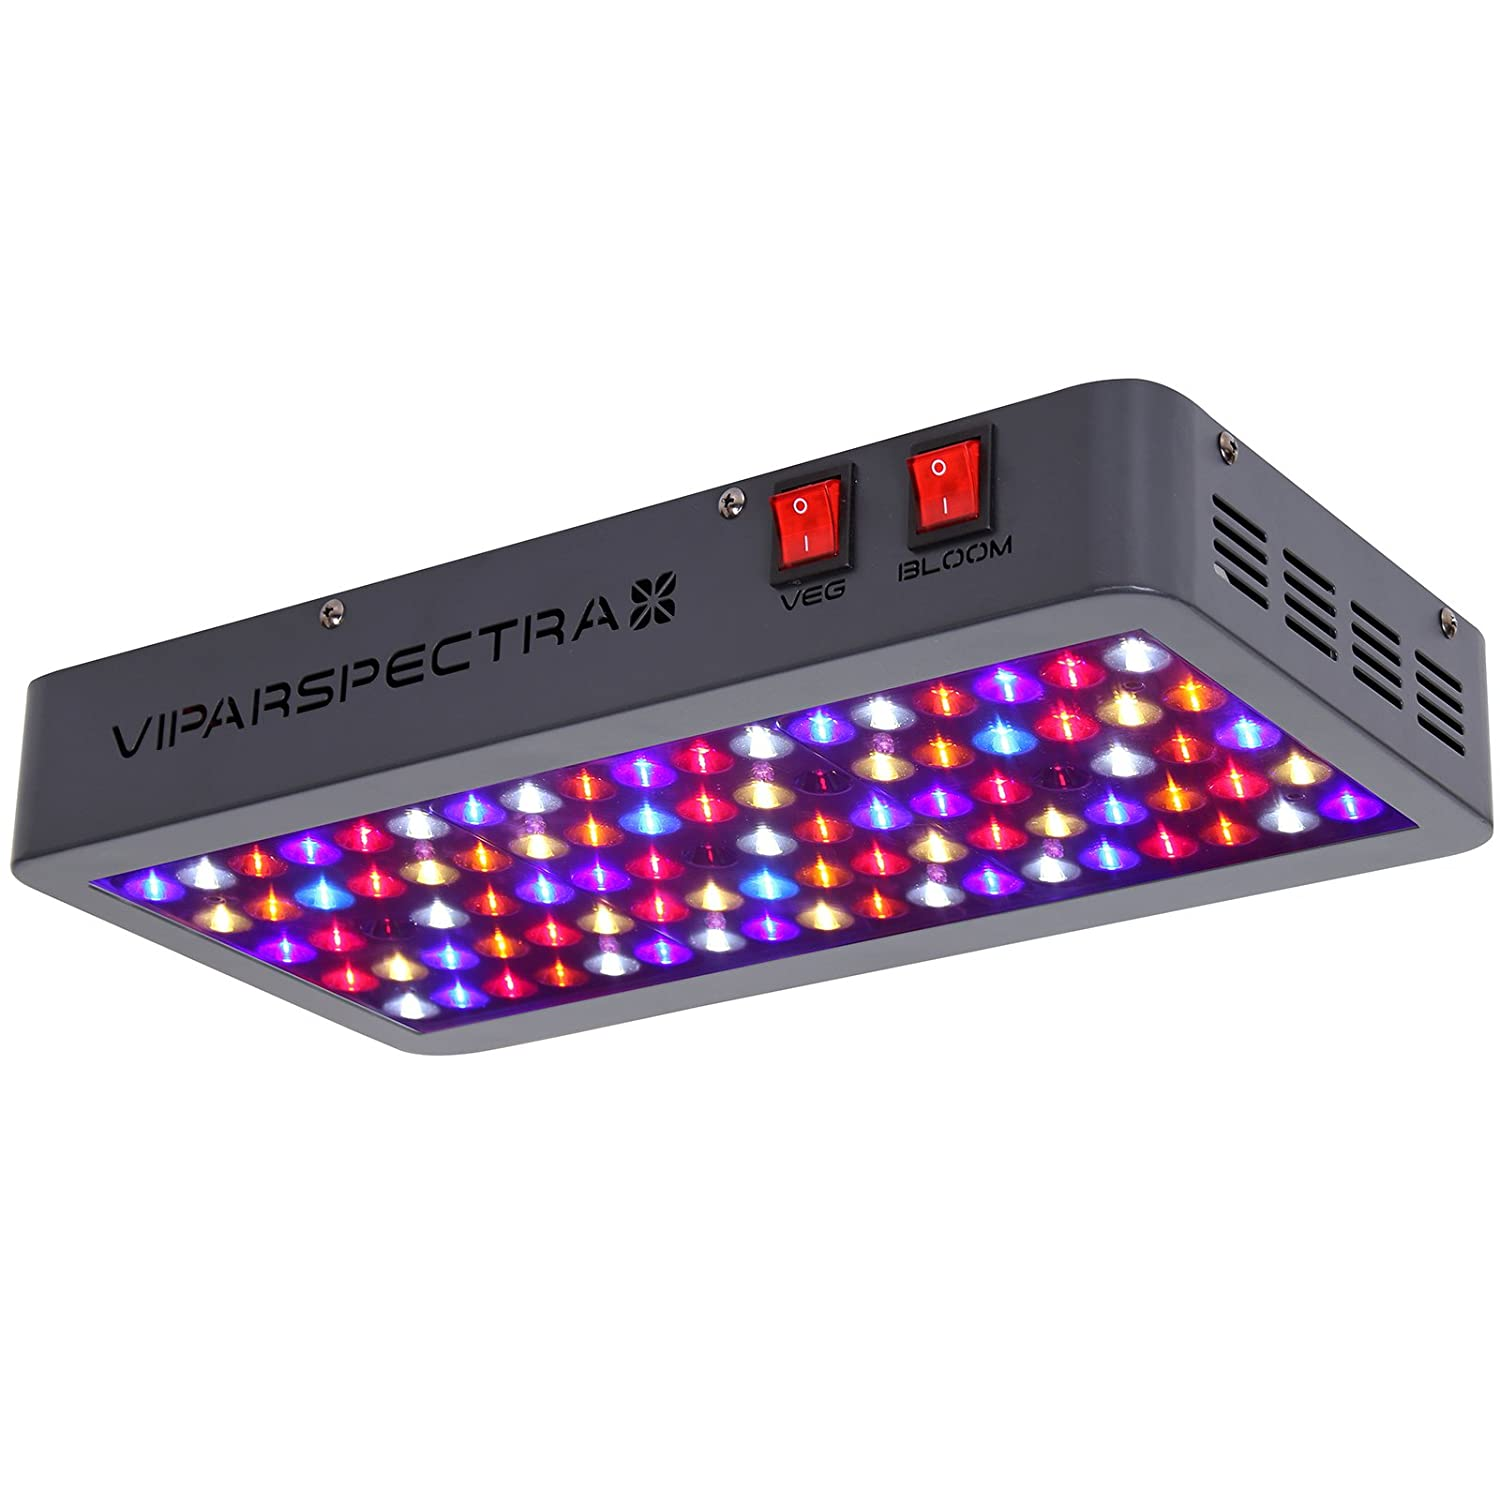 Viparspectra reflector series 450 W full spectrum